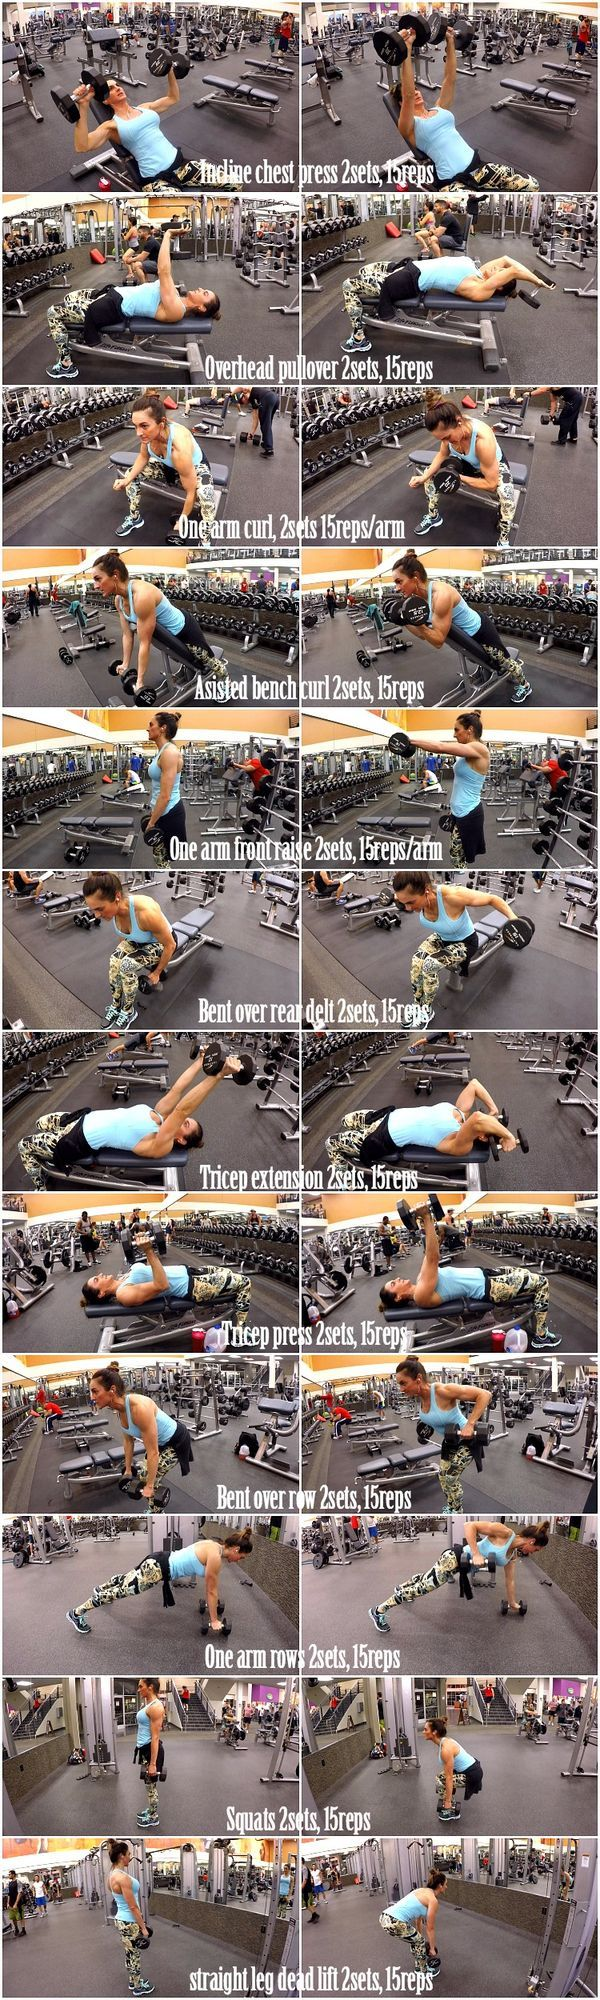 I thought it was time to get another full body dumbbell workout going that is quick to do and will give you a great workout without spending hours at the gym, PLUS it can be done in the privacy of you